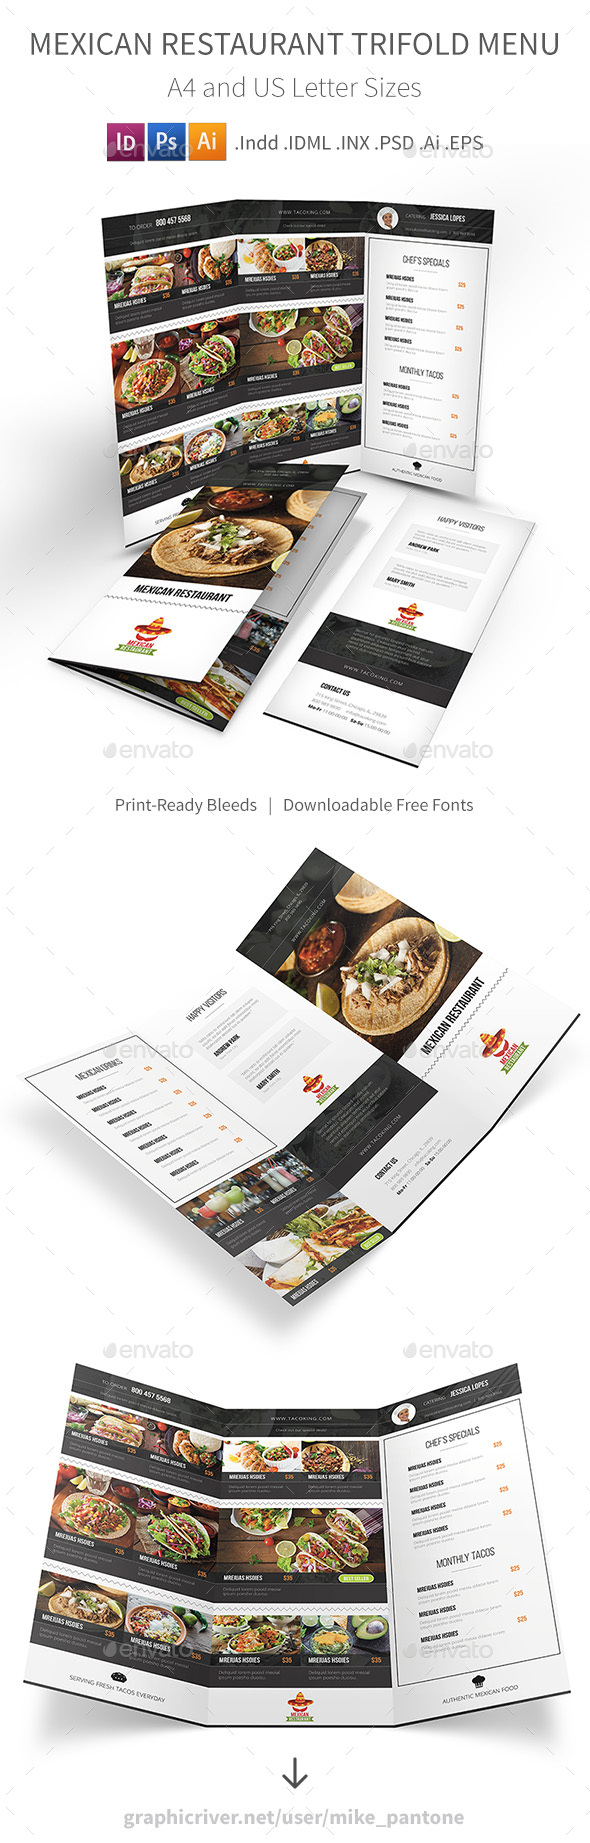 Mexican Restaurant Trifold Menu   Food Menus Print Templates  Free Downloadable Restaurant Menu Templates